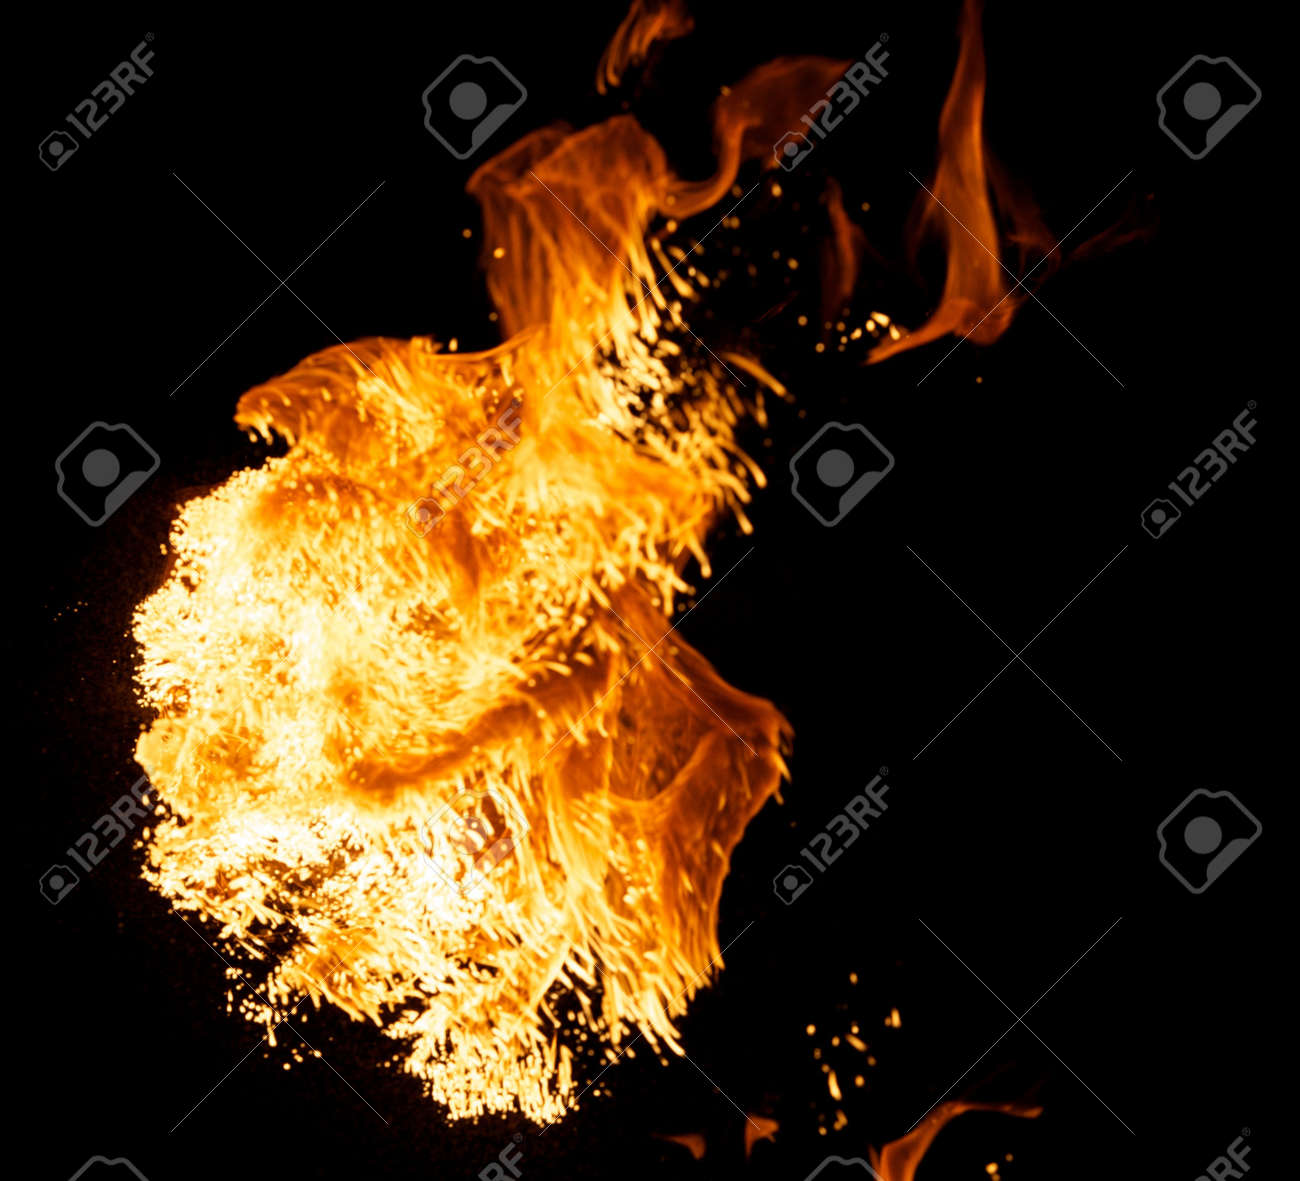 Fire explosion isolated on black background Stock Photo - 8932875